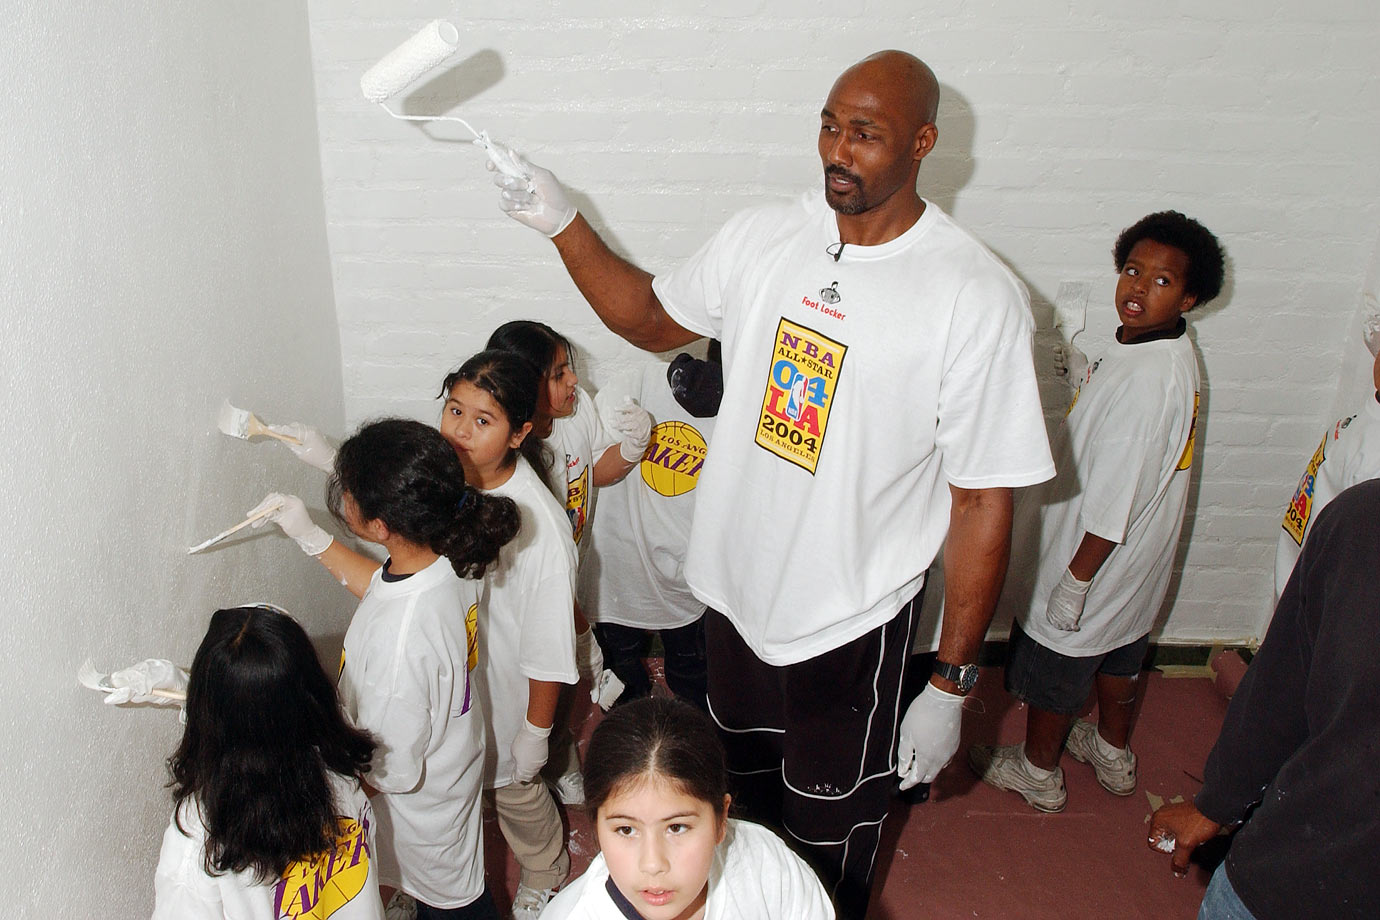 Karl Malone and some helpers renovate the Los Angeles Boys and Girls Club.